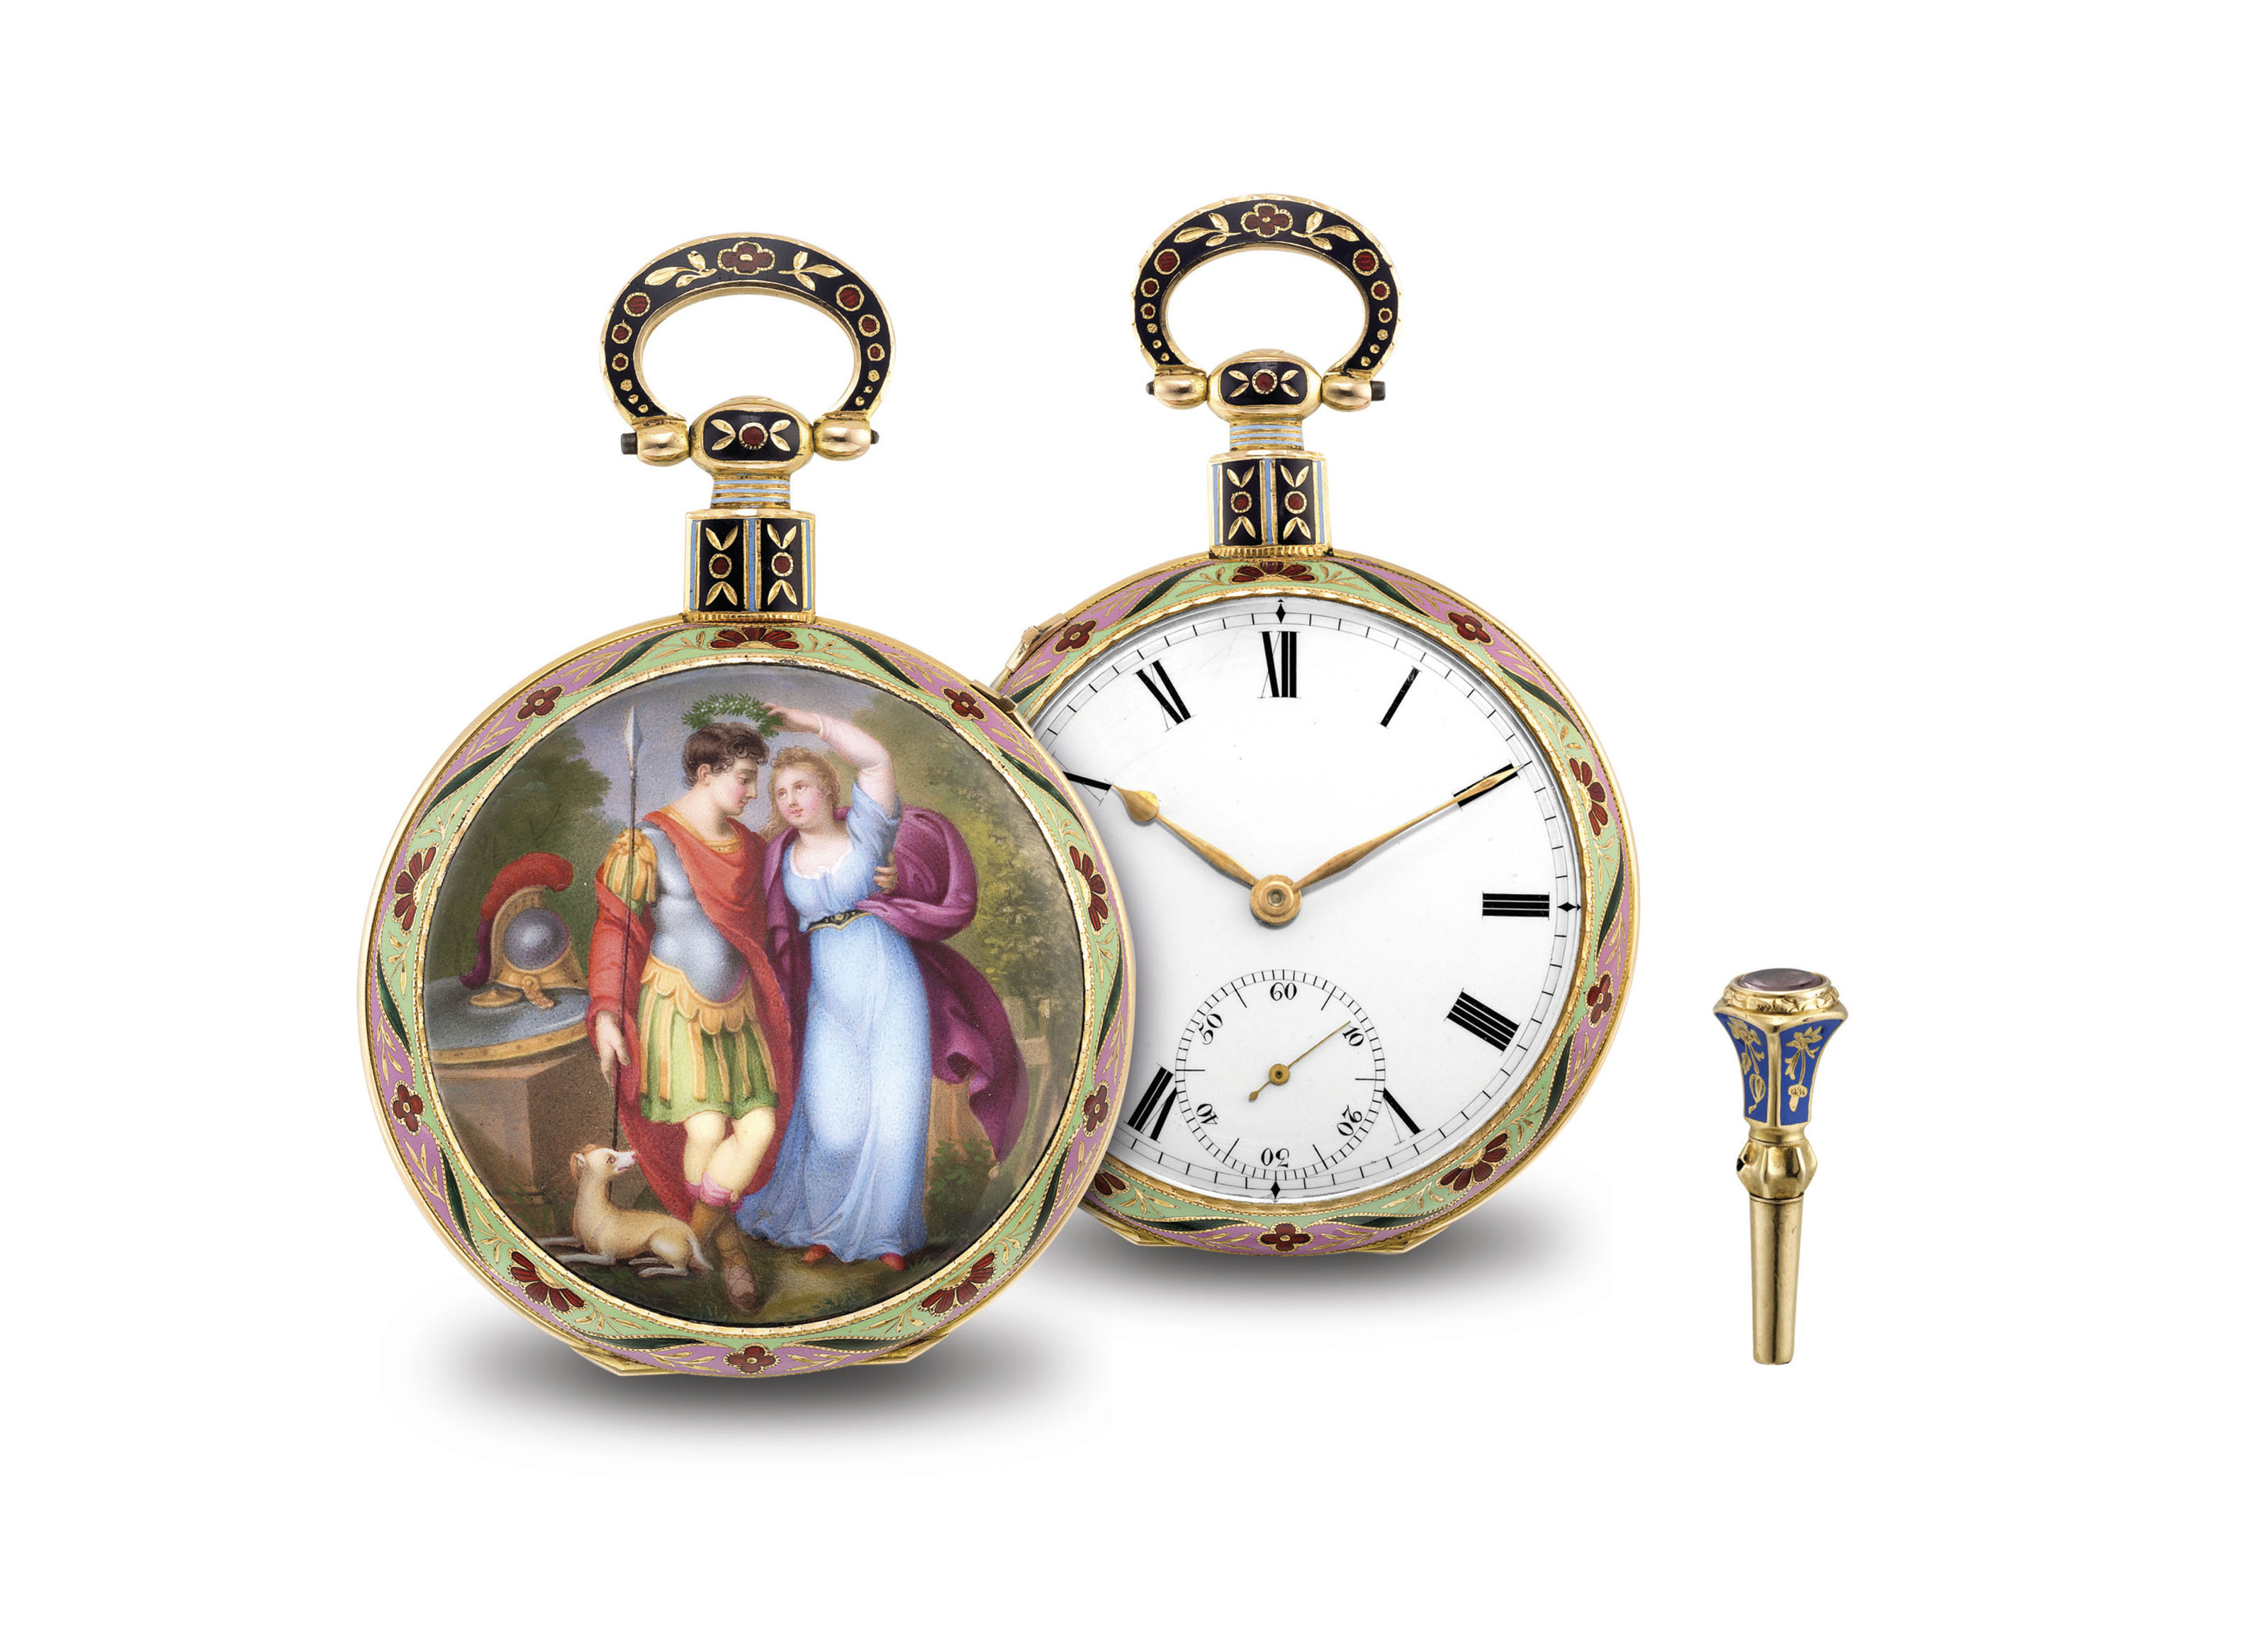 BOVET. AN EXTREMELY FINE AND RARE GOLD AND ENAMEL OPENFACE MUSICAL CYLINDER WATCH, MADE FOR THE CHINESE MARKET